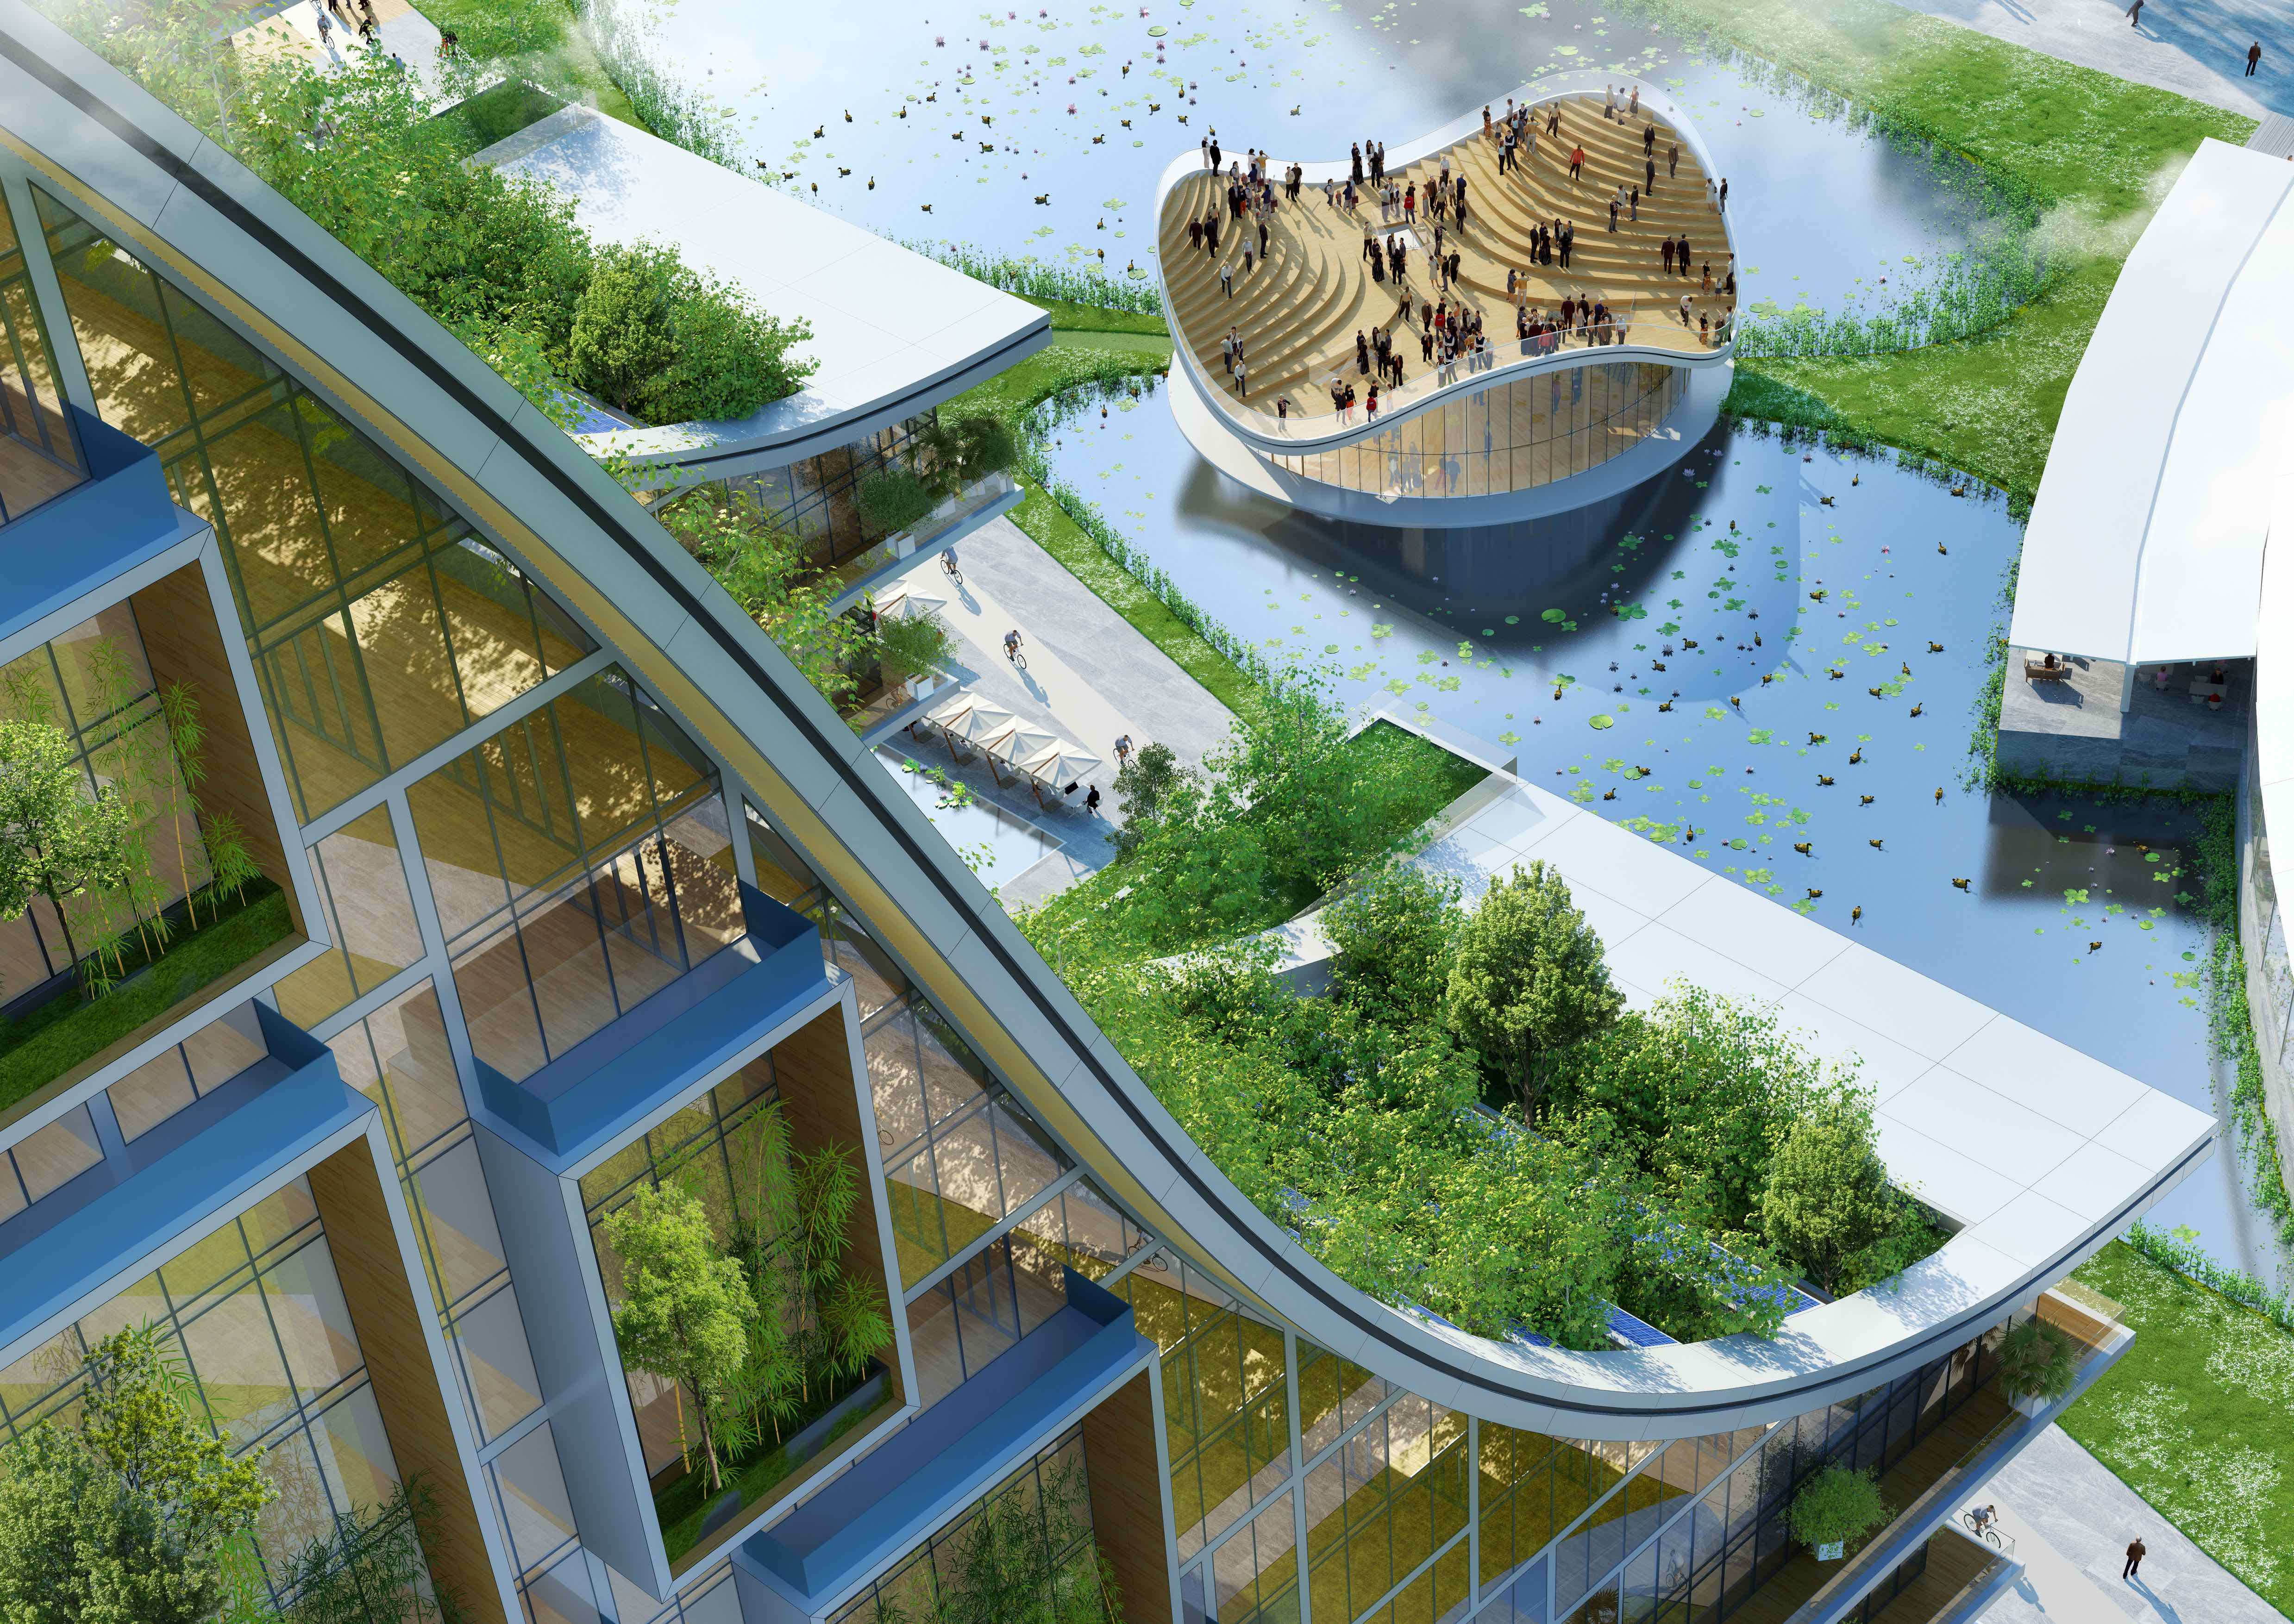 Lilypad from the Sky Forest © Vincent Callebaut